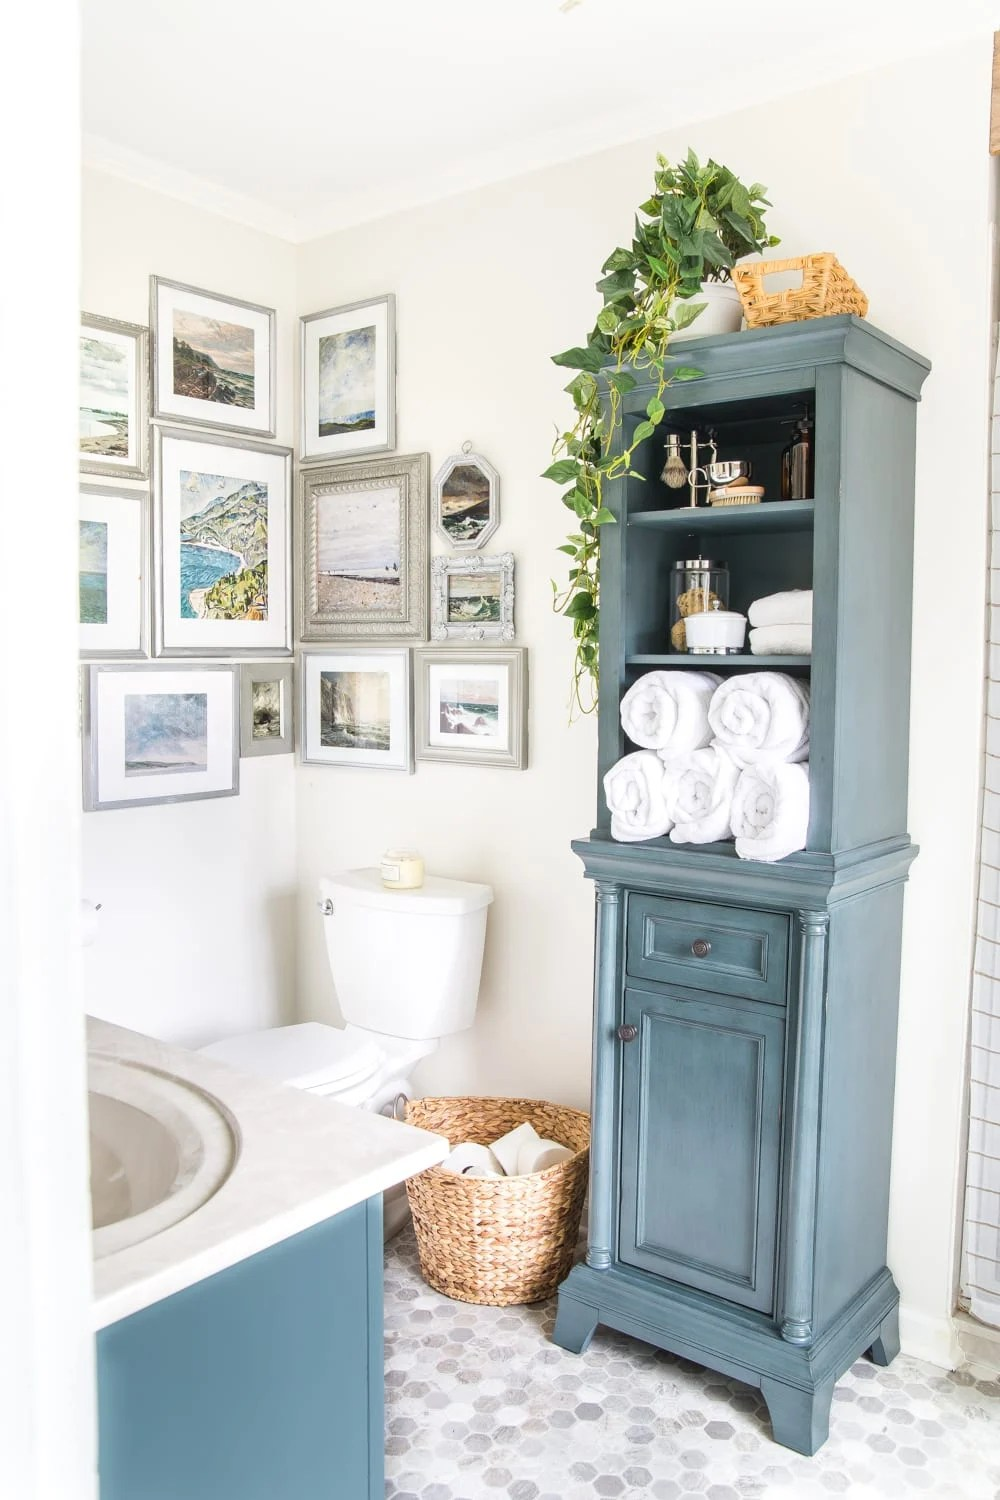 Budget Master Bathroom Refresh Reveal | corner gallery wall with thrifted frames and free coastal art printables and linen cabinet